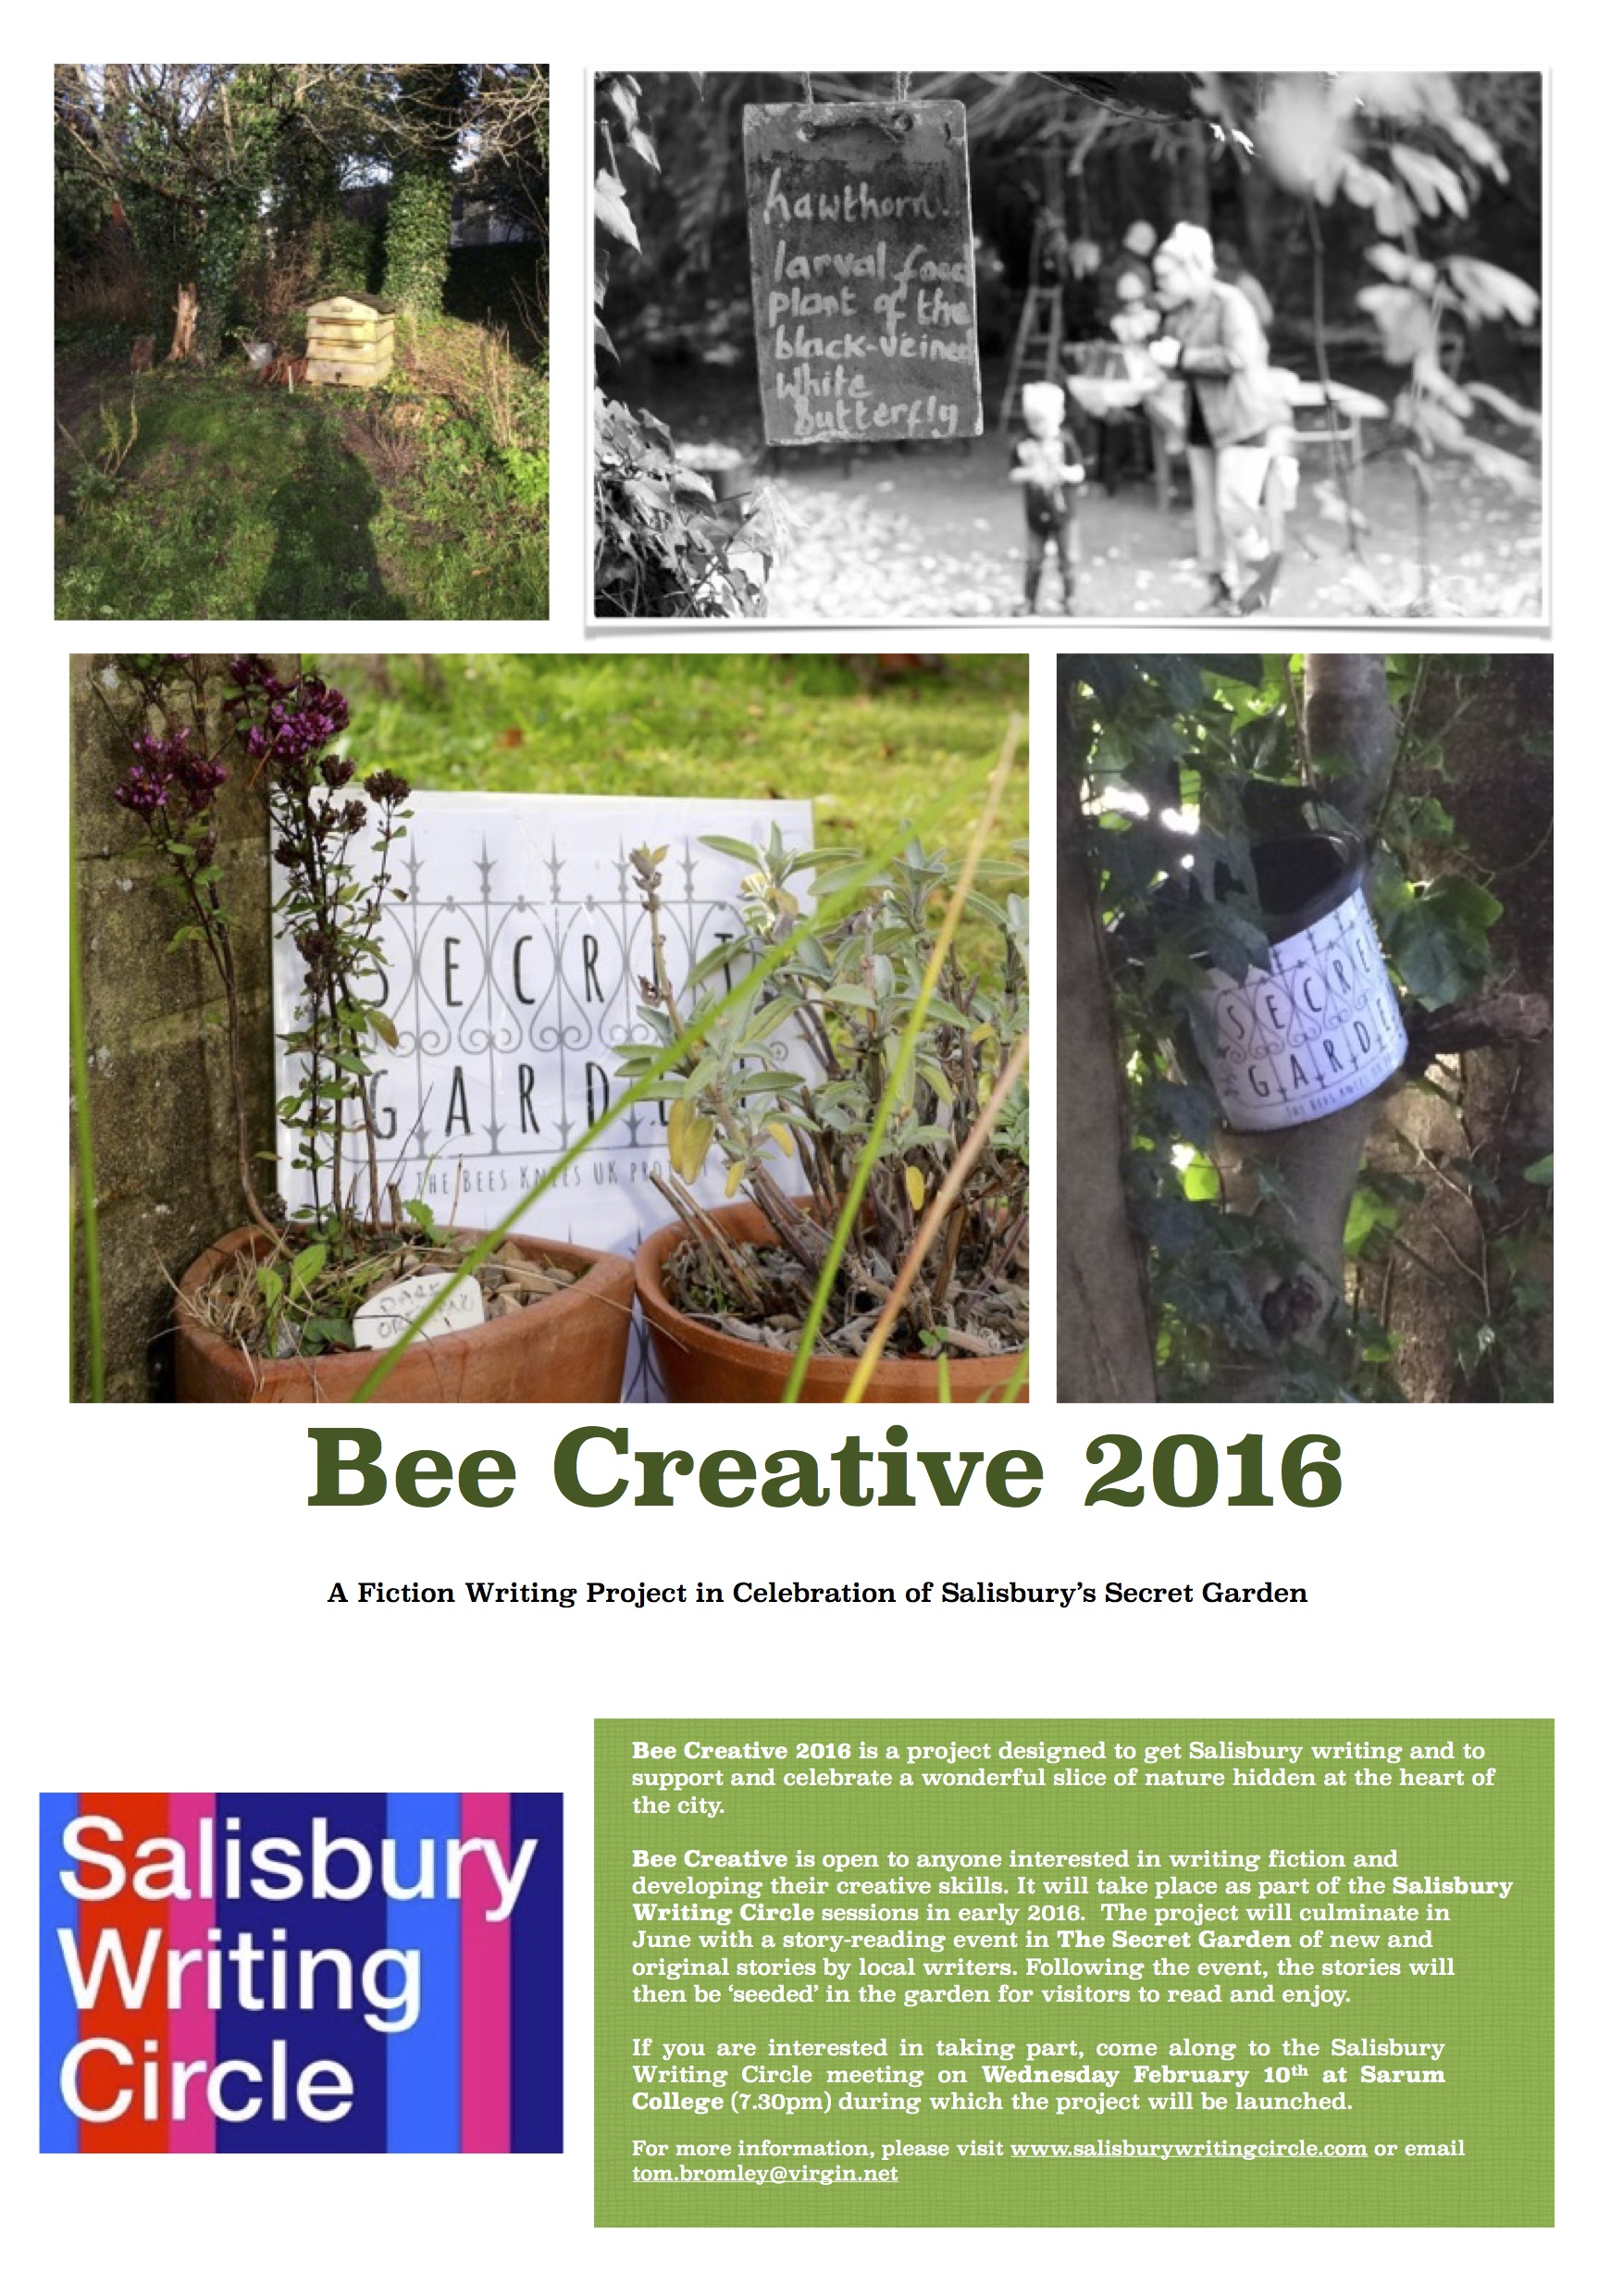 Bee Creative Poster JPEG copy